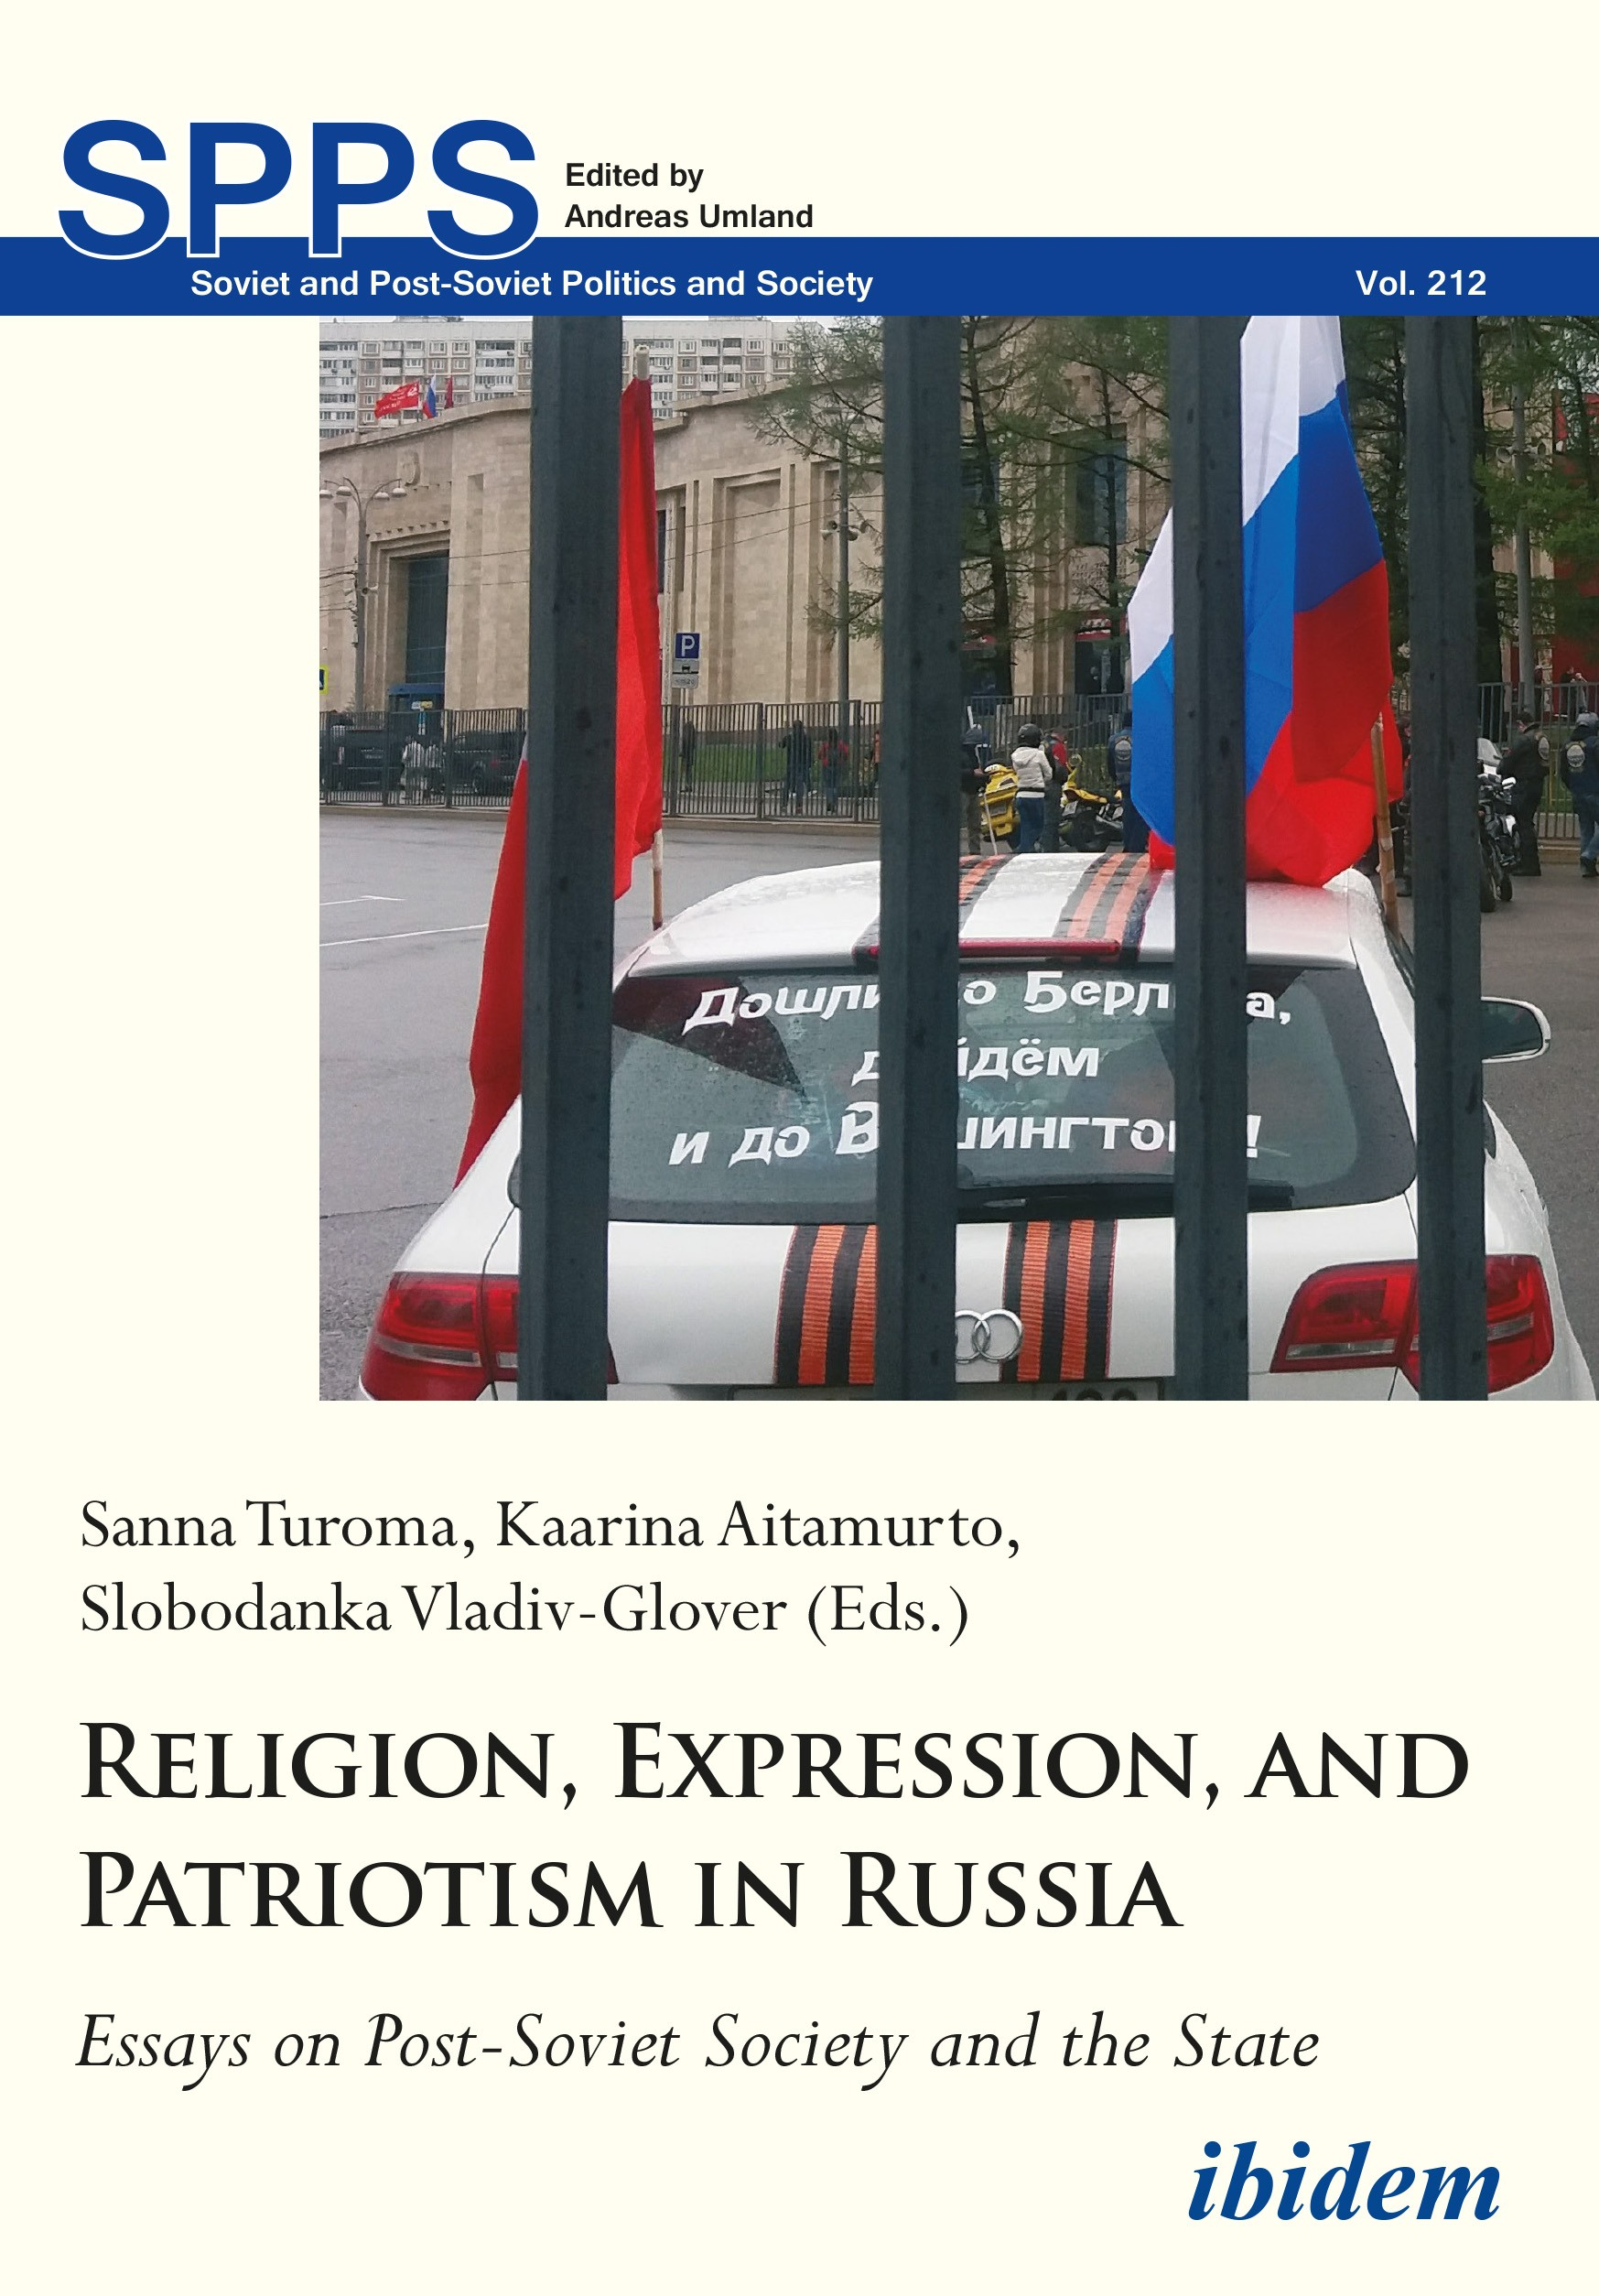 Religion, Expression, and Patriotism in Russia